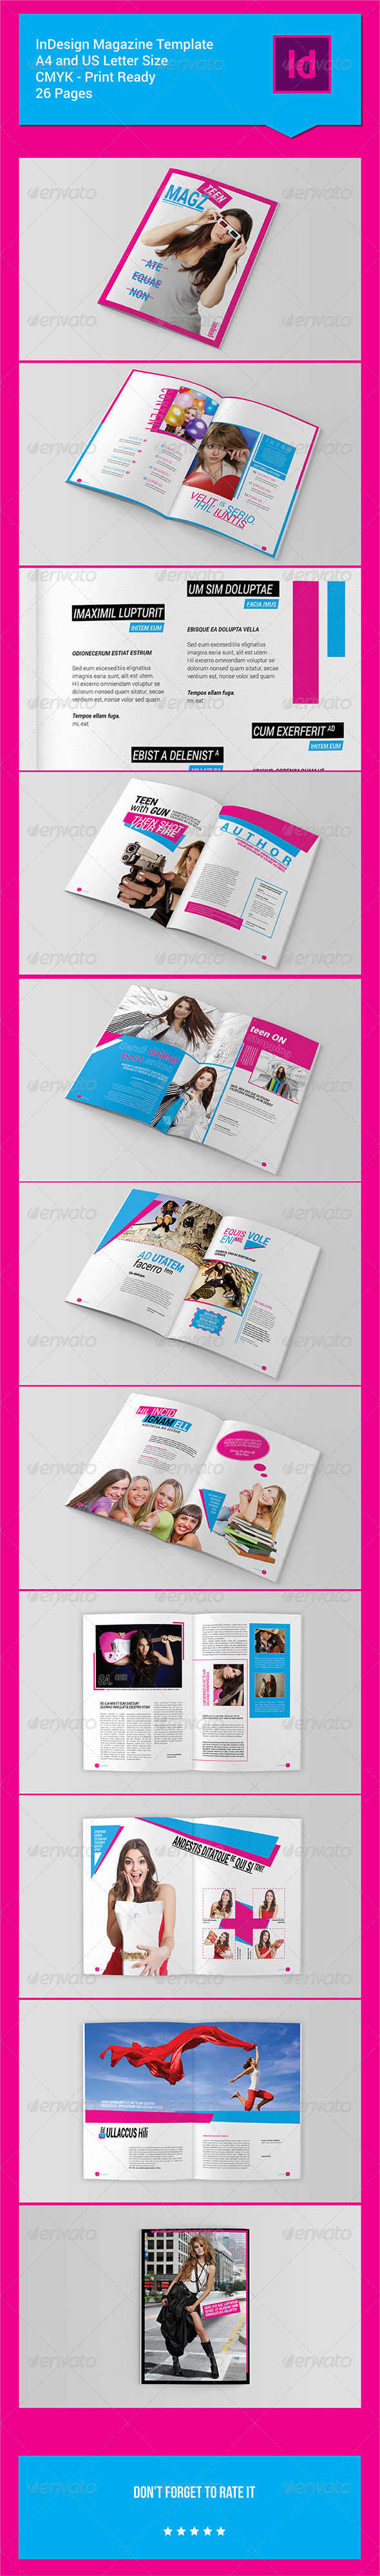 GraphicRiver 26 Pages InDesign Magazine Template 7628613